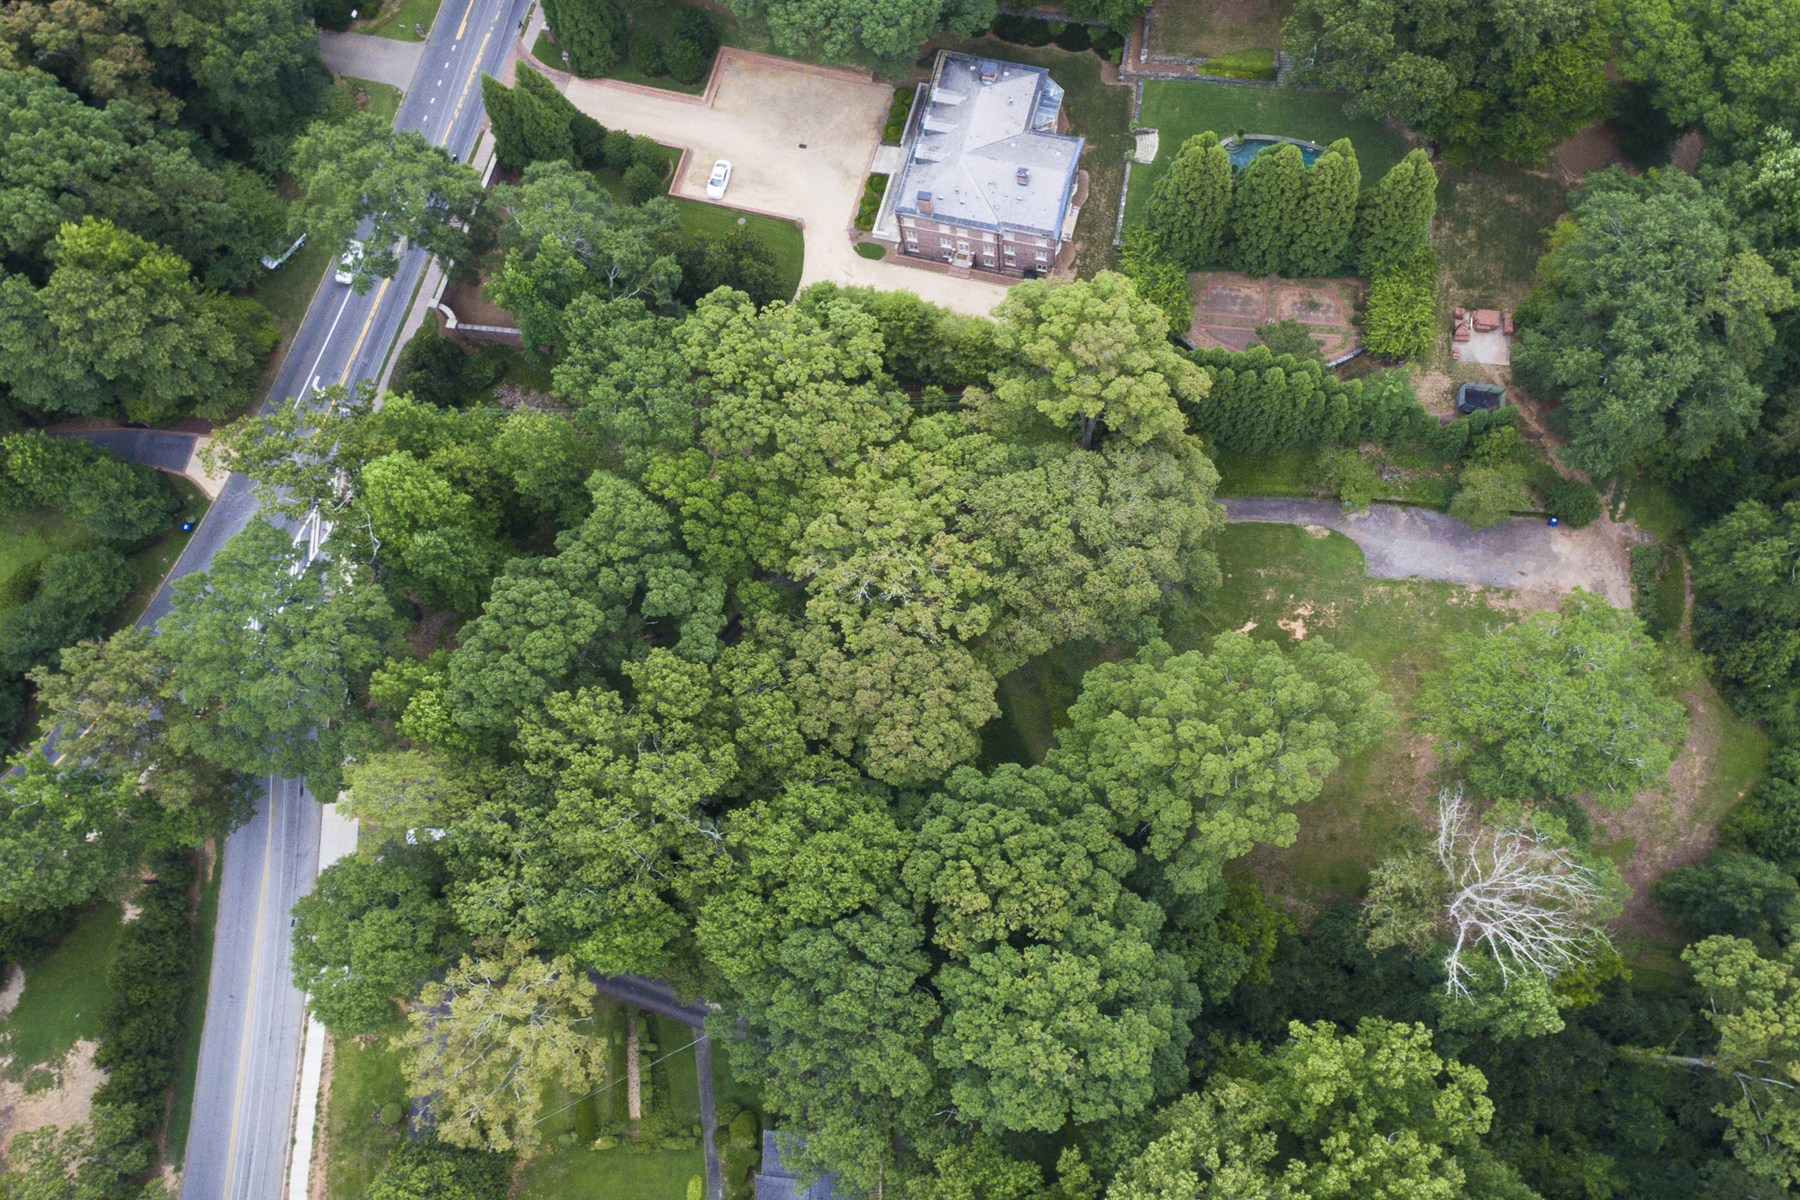 Terreno para Venda às Gorgeous 2+ Acre Lot On Atlanta's Prestigious West Paces Ferry Road 524 W Paces Ferry Road Buckhead, Atlanta, Geórgia 30305 Estados Unidos